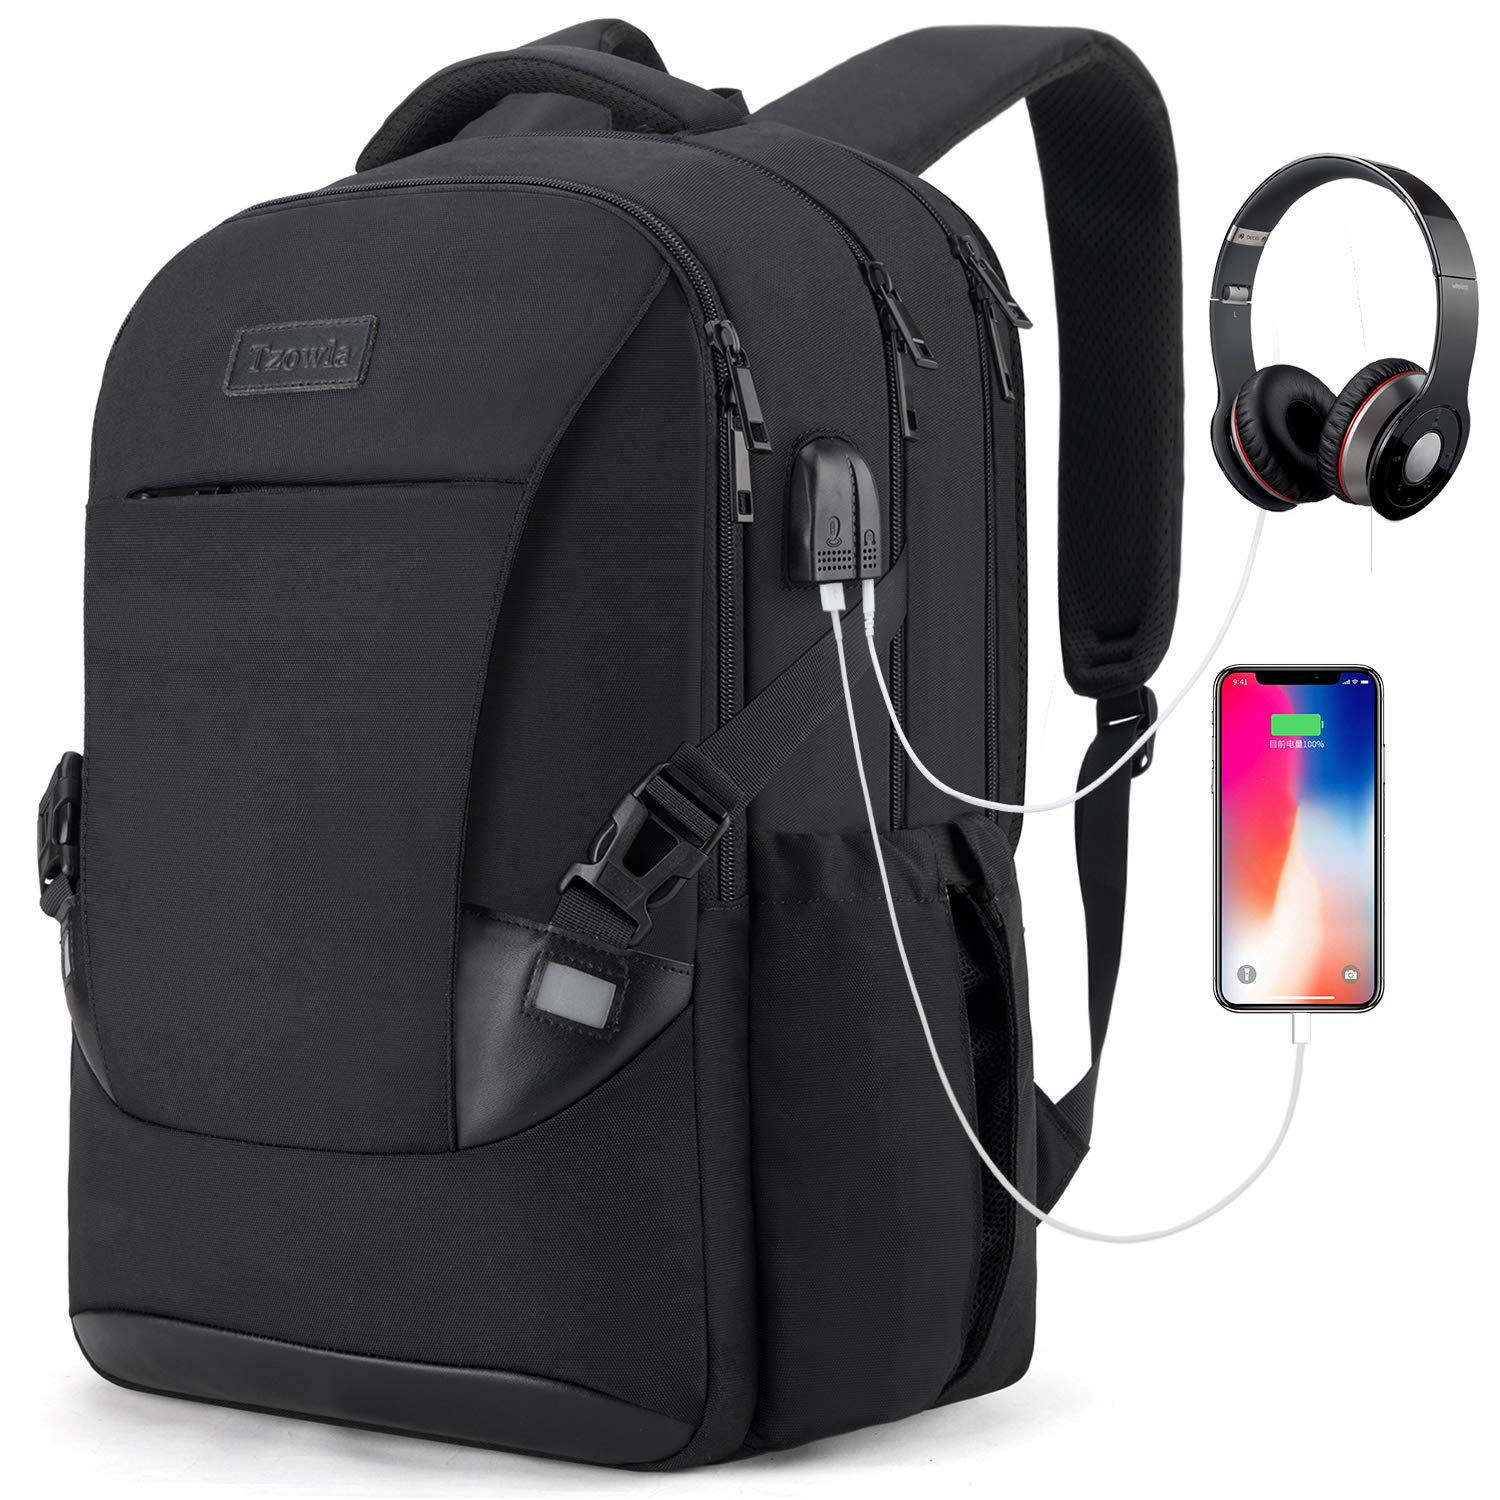 Tzowla Travel Laptop Backpack Waterproof Business Work School College Bag Daypack with USB Charging&Headphone Port for Men Women Boy Girl Student Durable Luggage Backpacks Fit 15.6/17Inch(Black)